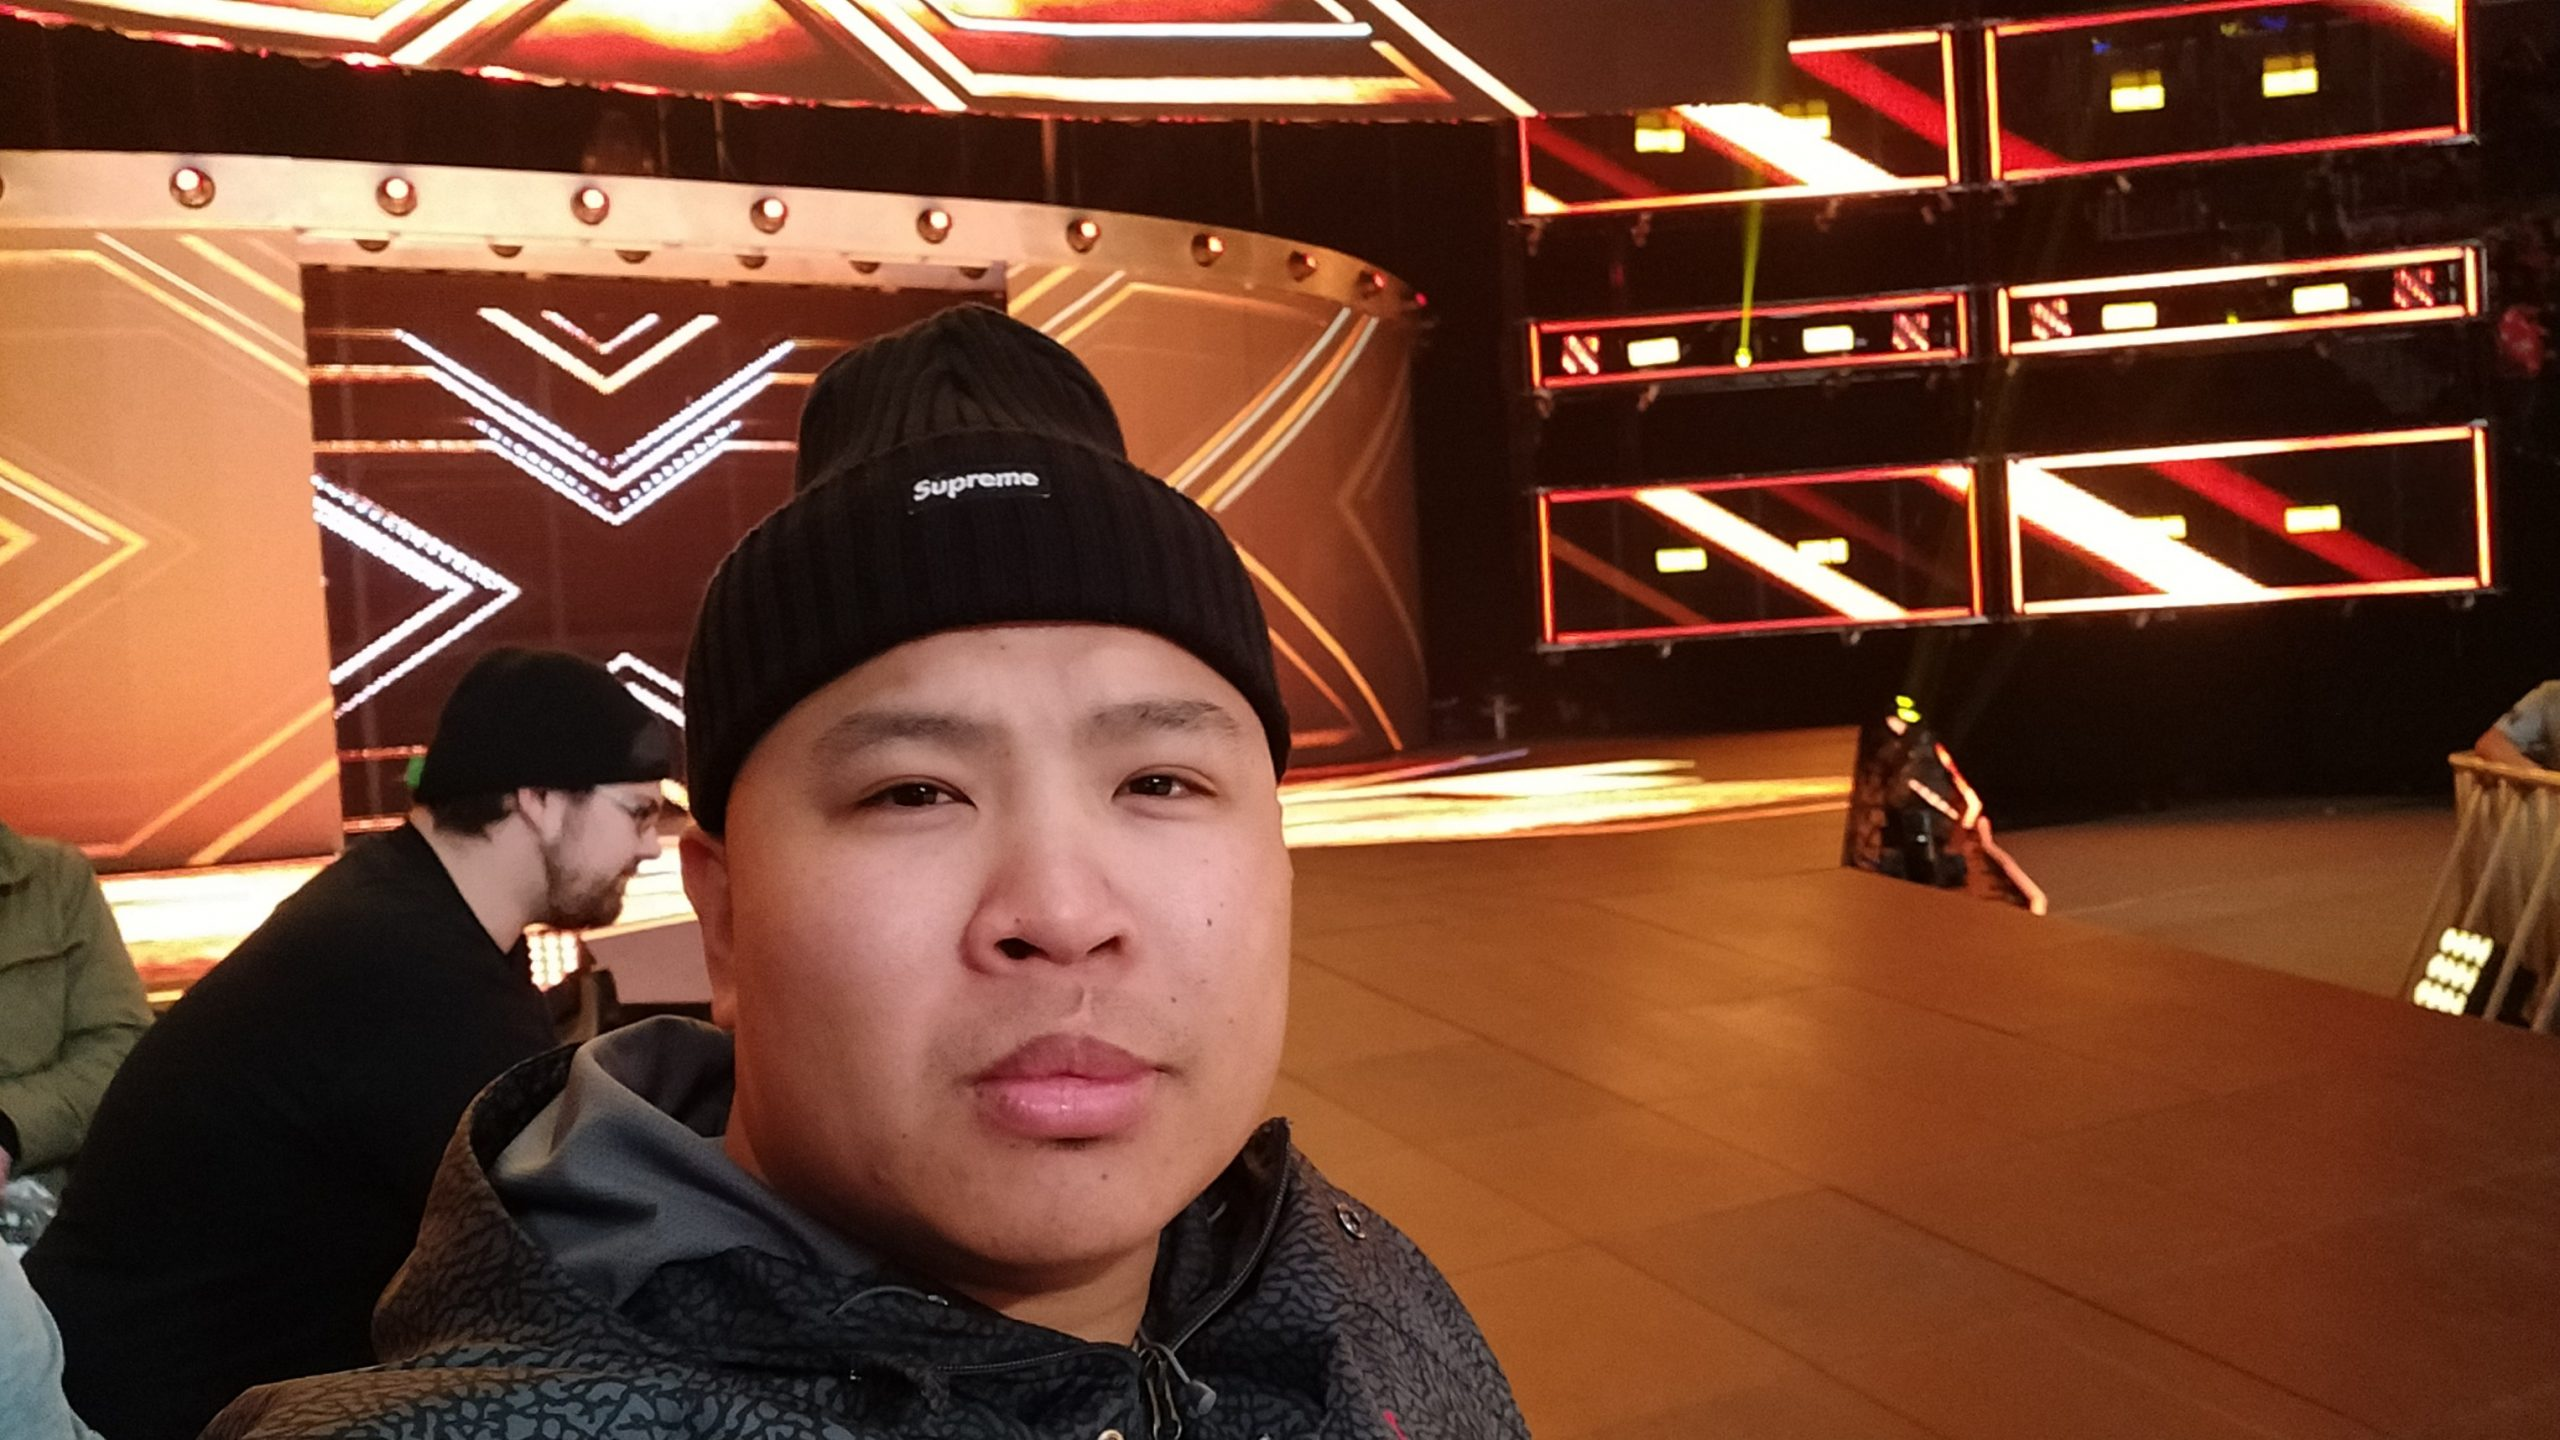 8th row ringside seat view at NXT TakeOver: New York inside Barclays Center